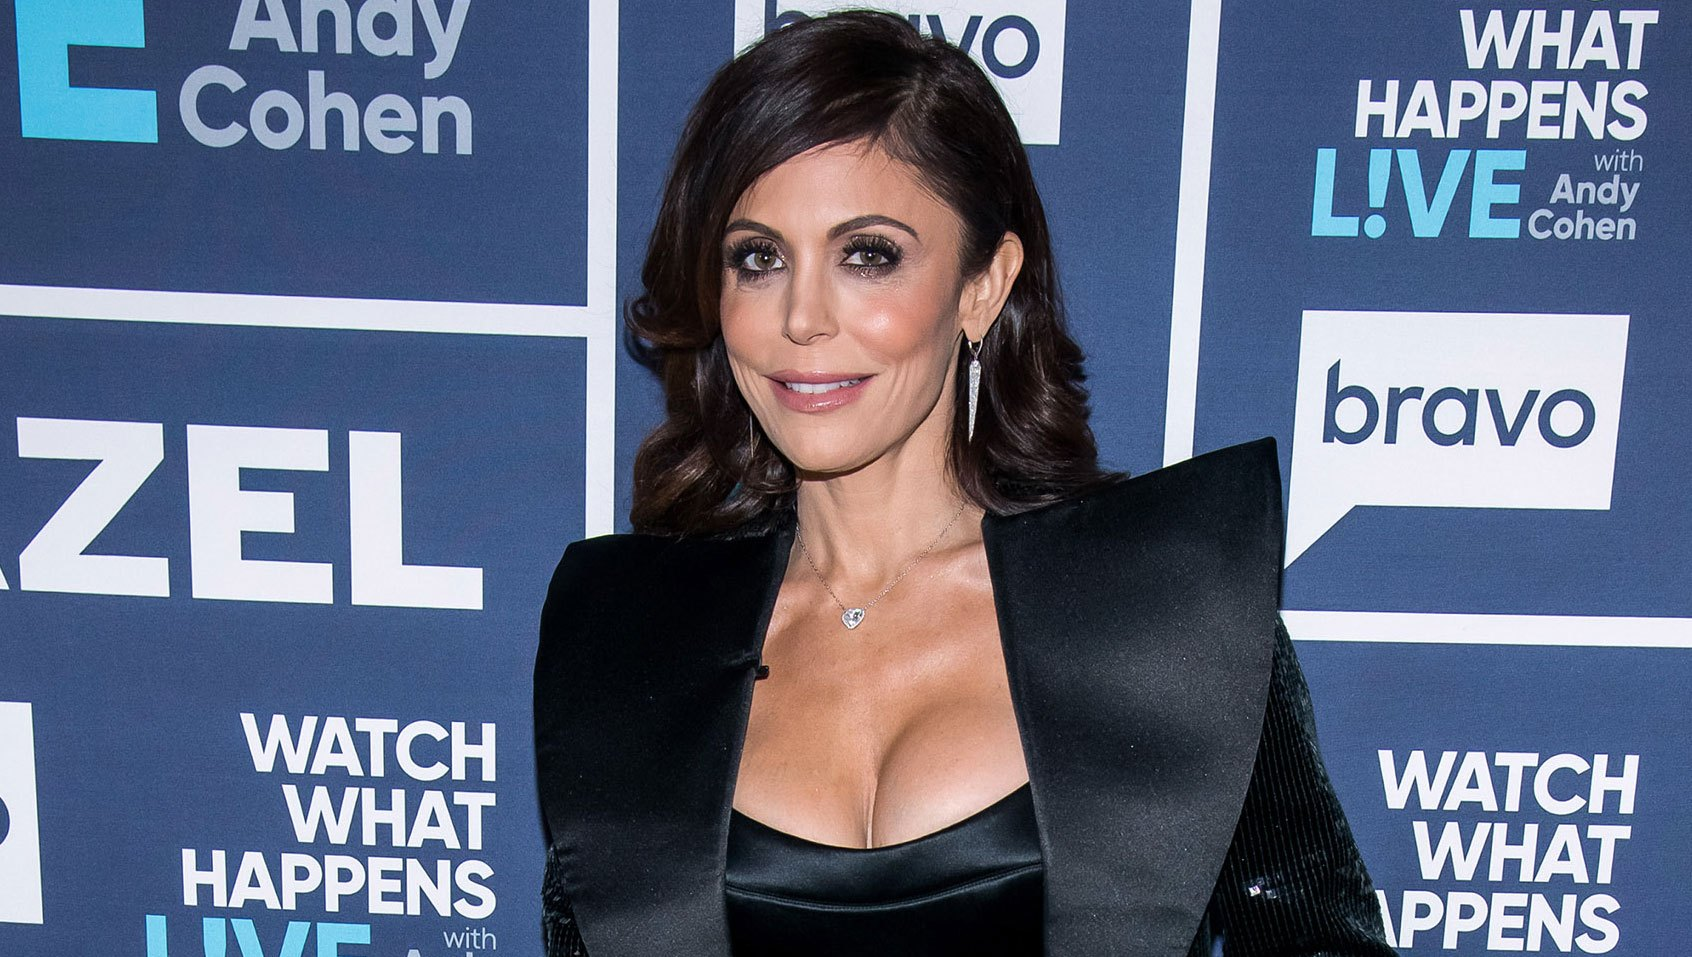 Bethenny Frankle Talks Kyle and LVP Feud